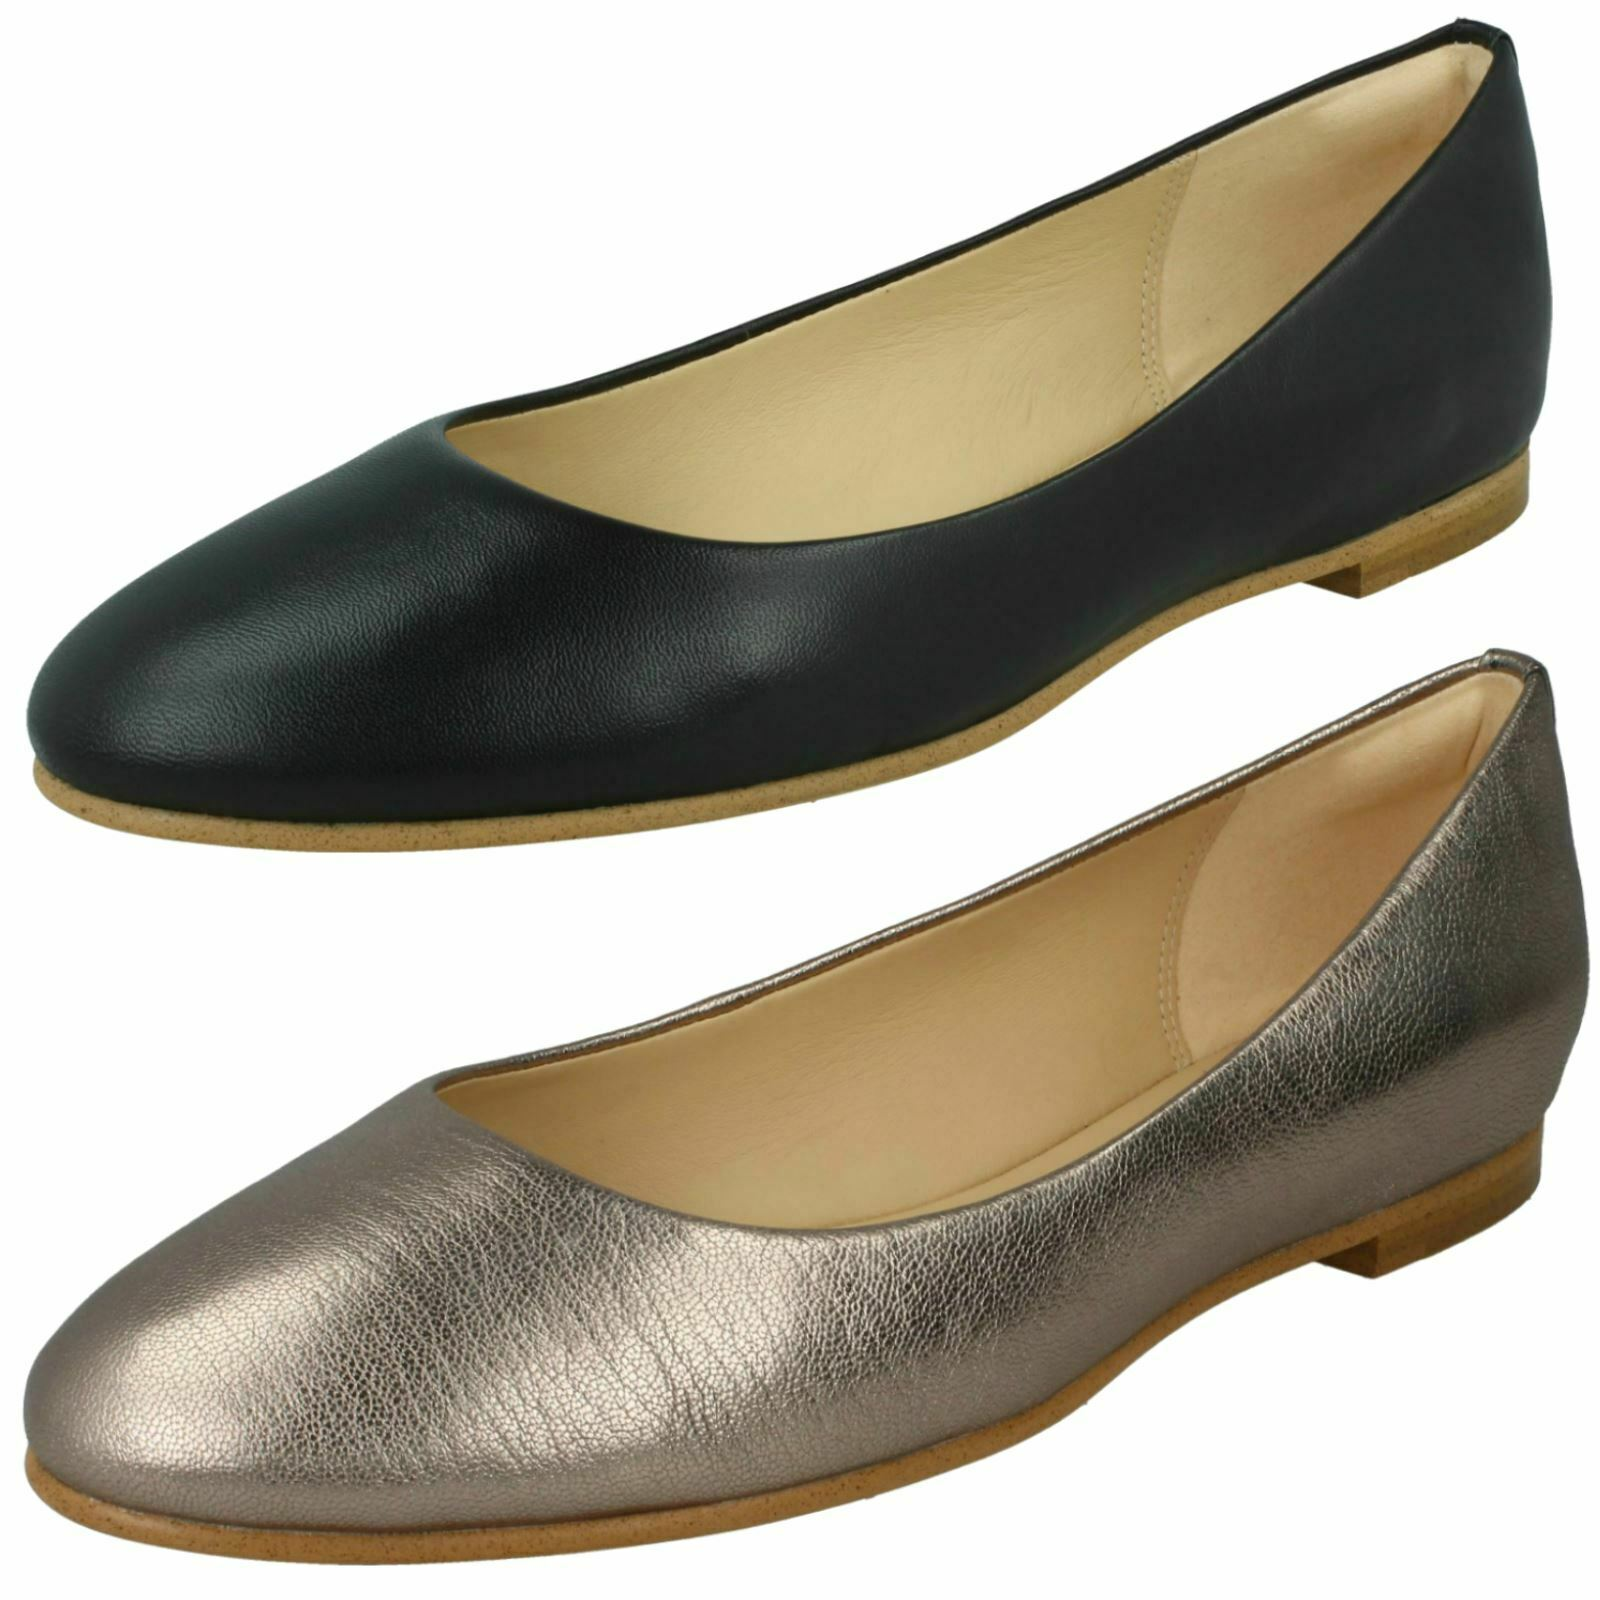 Damen clarks' Grace Piper' Smart Leder Slipper Pumps - D Passform